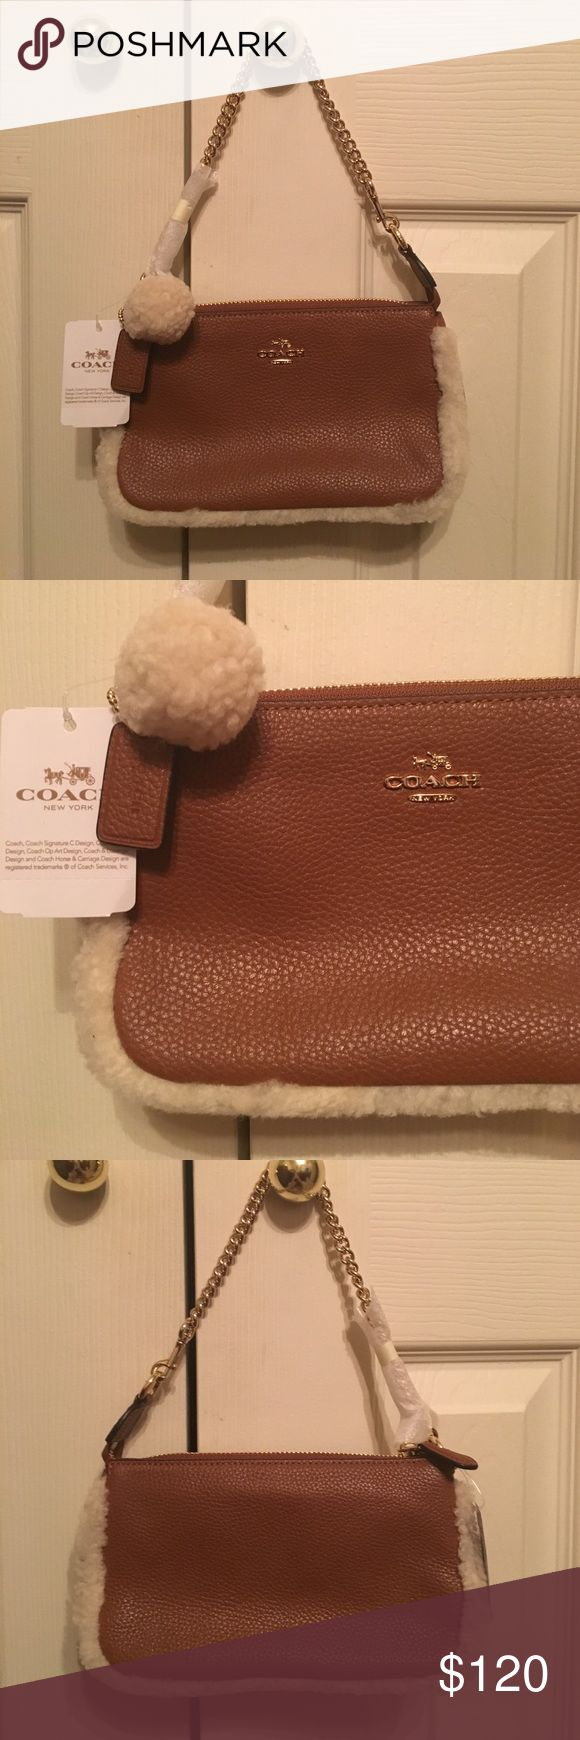 NWT coach clutch absolutely stunning ❤💕💋🌹💗 Brand new brown coach clutch bag!! NWT and never been used. Perfect going out bag!! ❤😊😘💋💕🌹❤️😍.. two Michael Kors and one coach ... Coach Bags Clutches & Wristlets